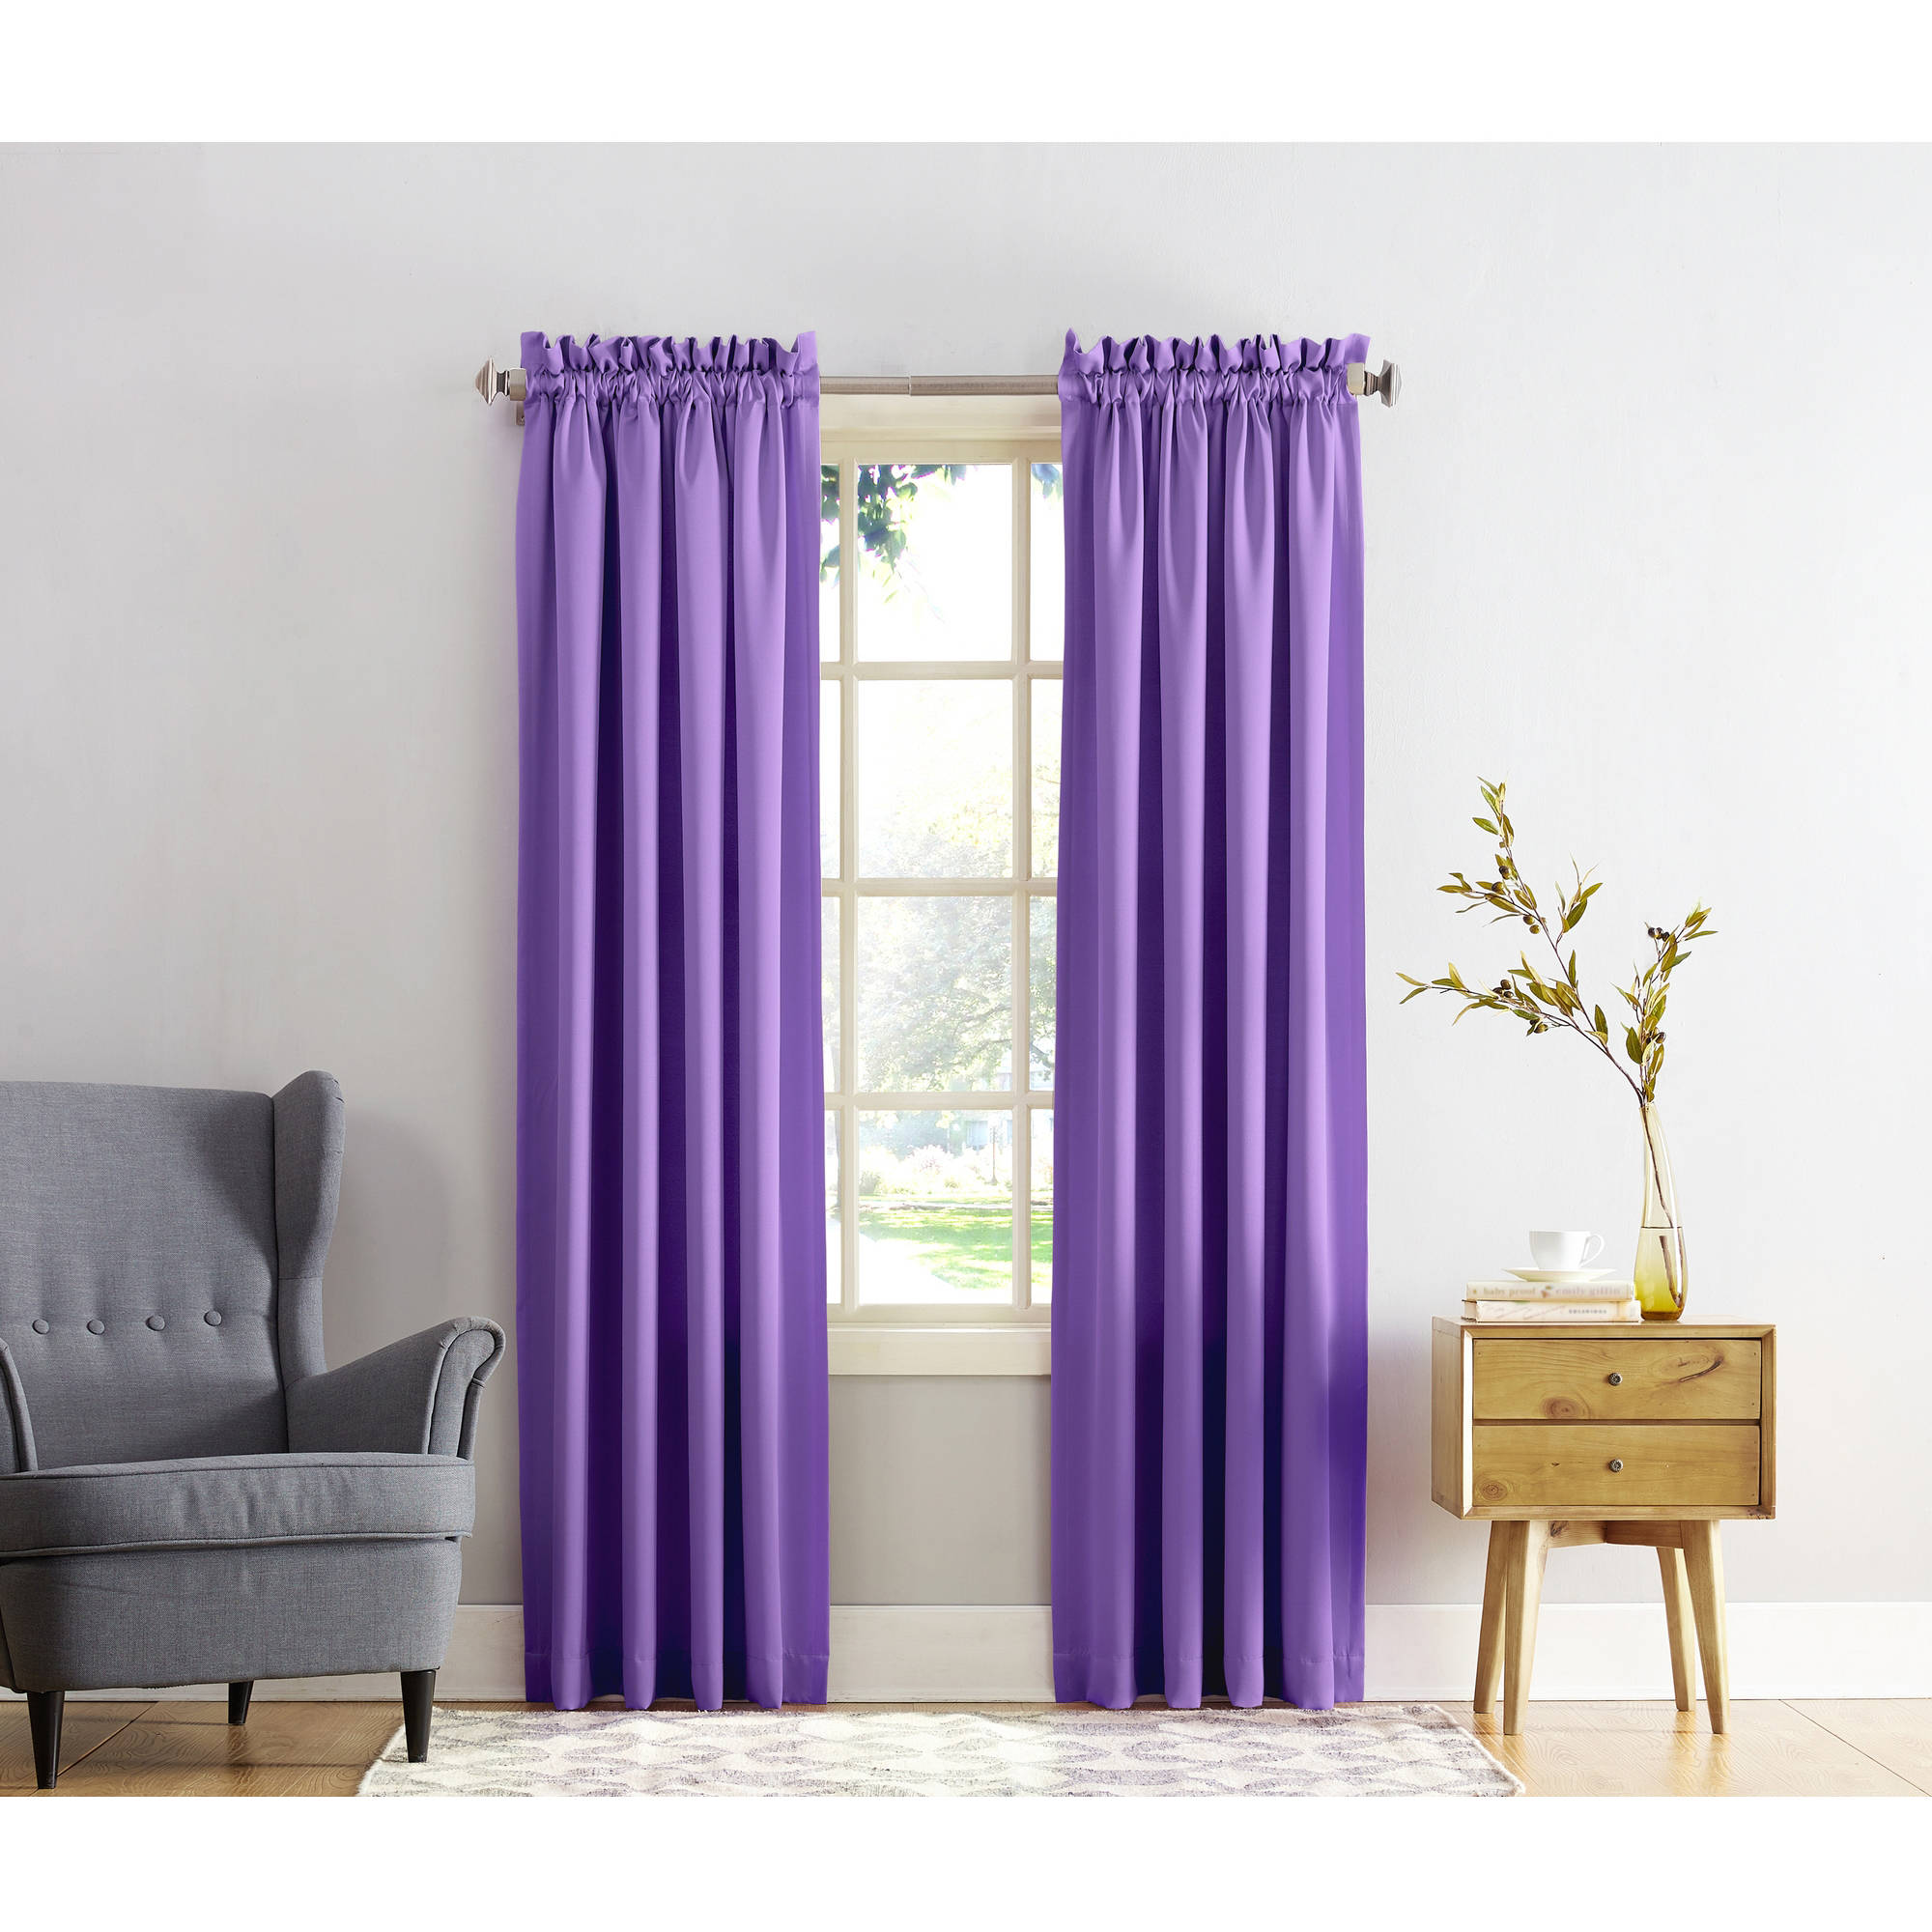 Better Homes and Gardens Crushed Room Darkening Curtain Panel - Walmart.com